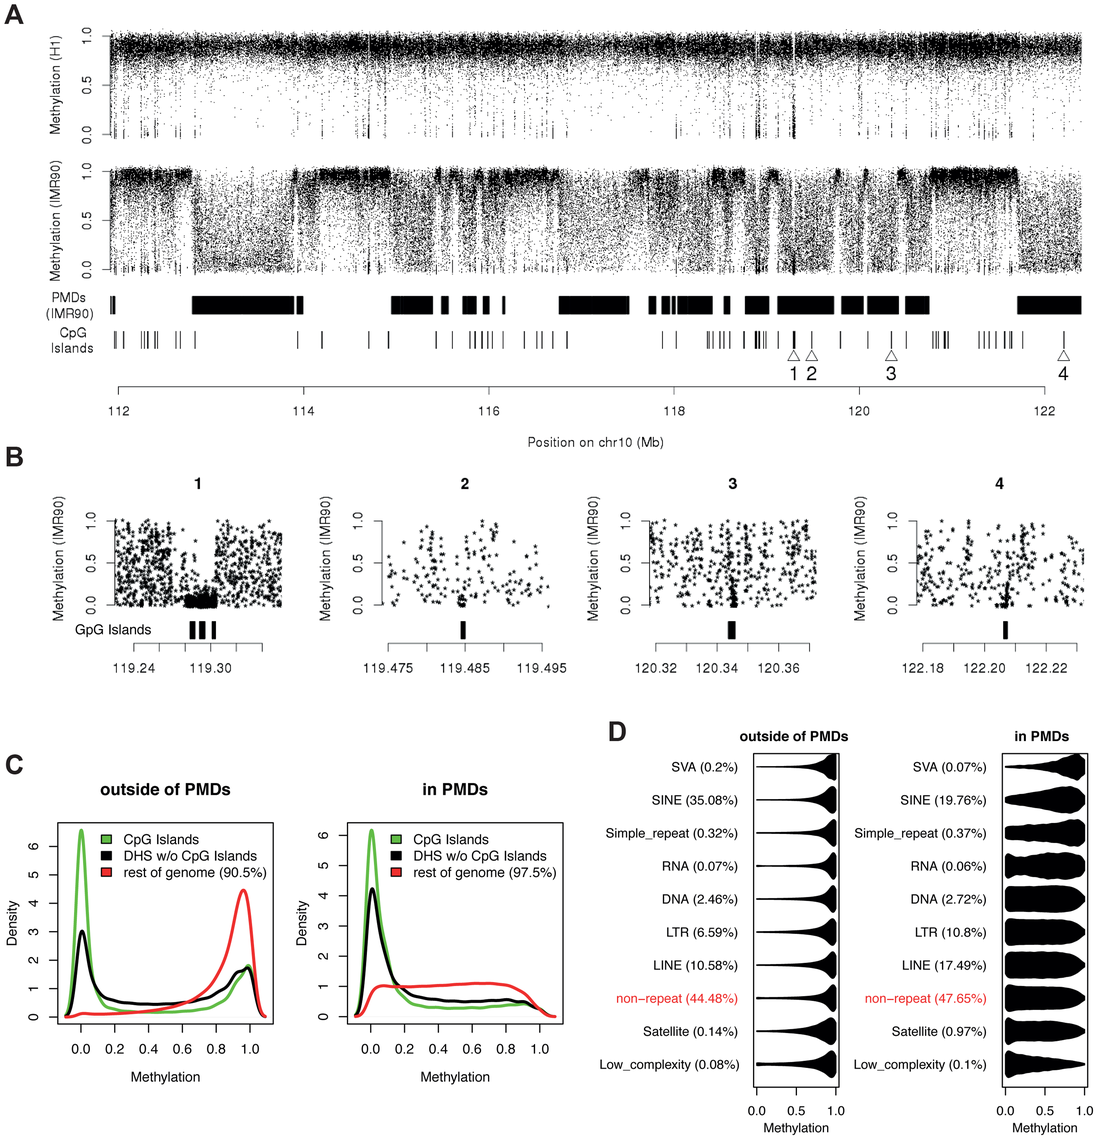 CpG methylation levels in PMDs are highly variable along the genome.